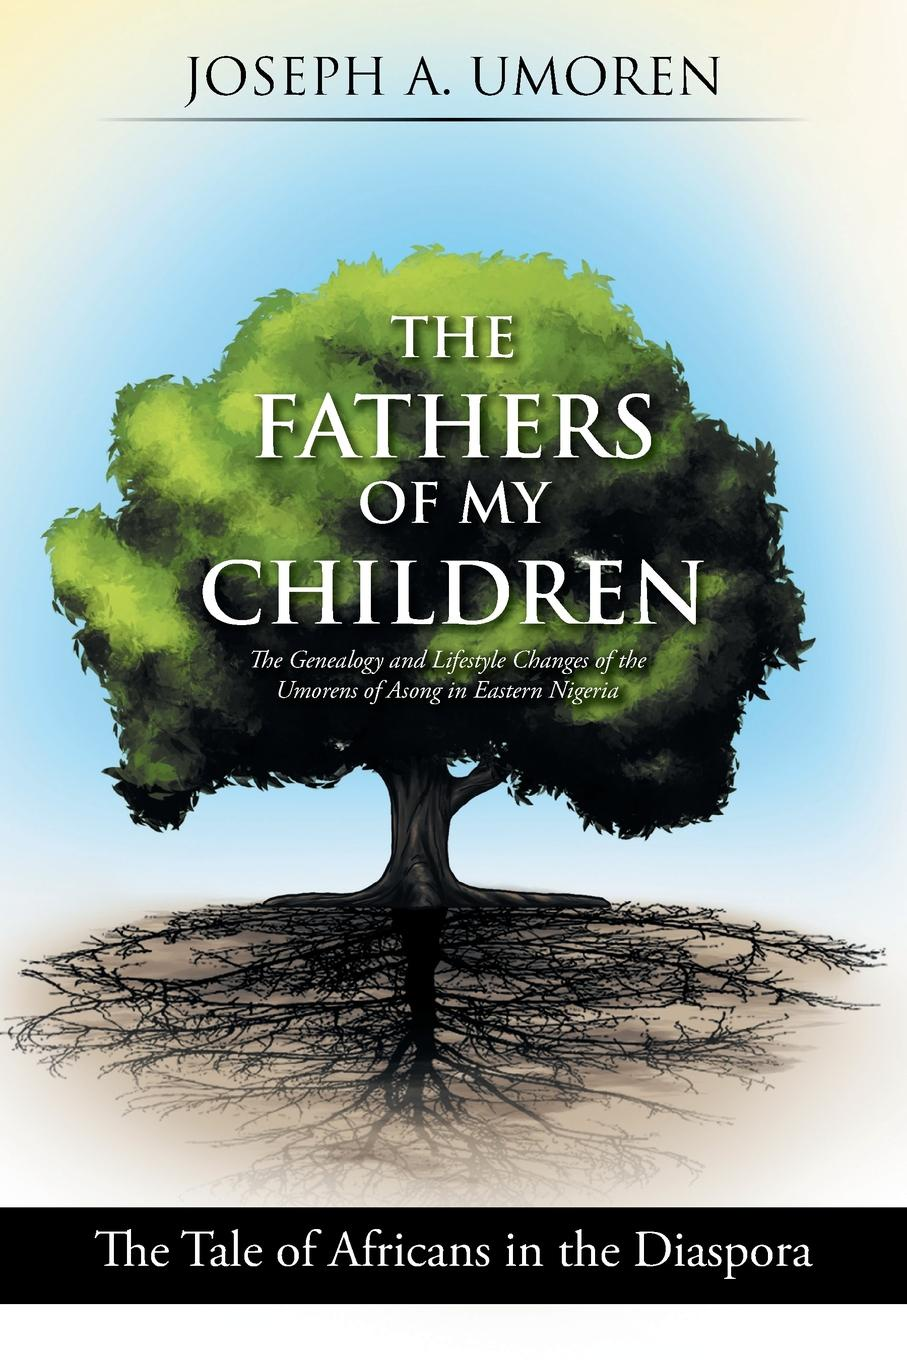 Joseph A. Umoren The Fathers of My Children. The Genealogy and Lifestyle Changes of the Umorens of Asong in Eastern Nigeria: The Tale of Africans in the Diaspora godwin sadoh five decades of music transmutation in nigeria and the diaspora